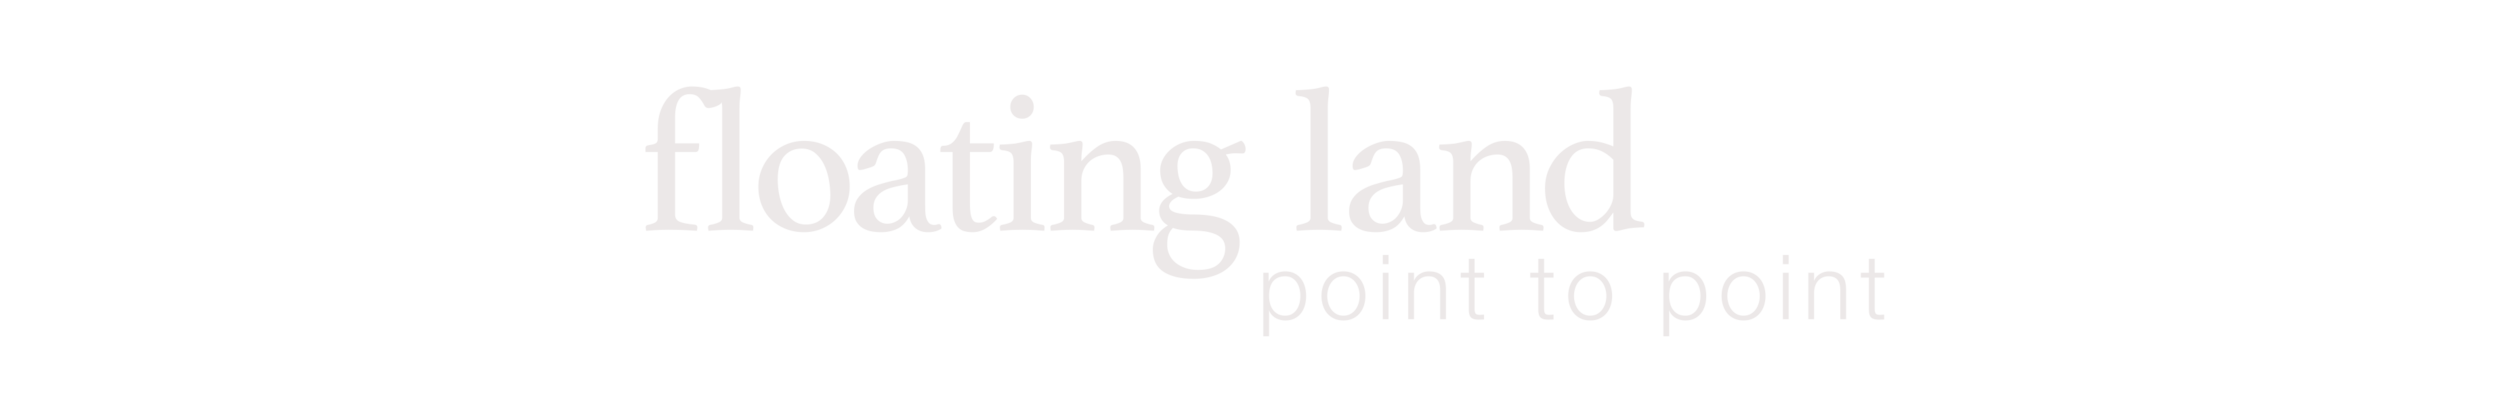 FloatingLandLogo_2019_smaller white.png